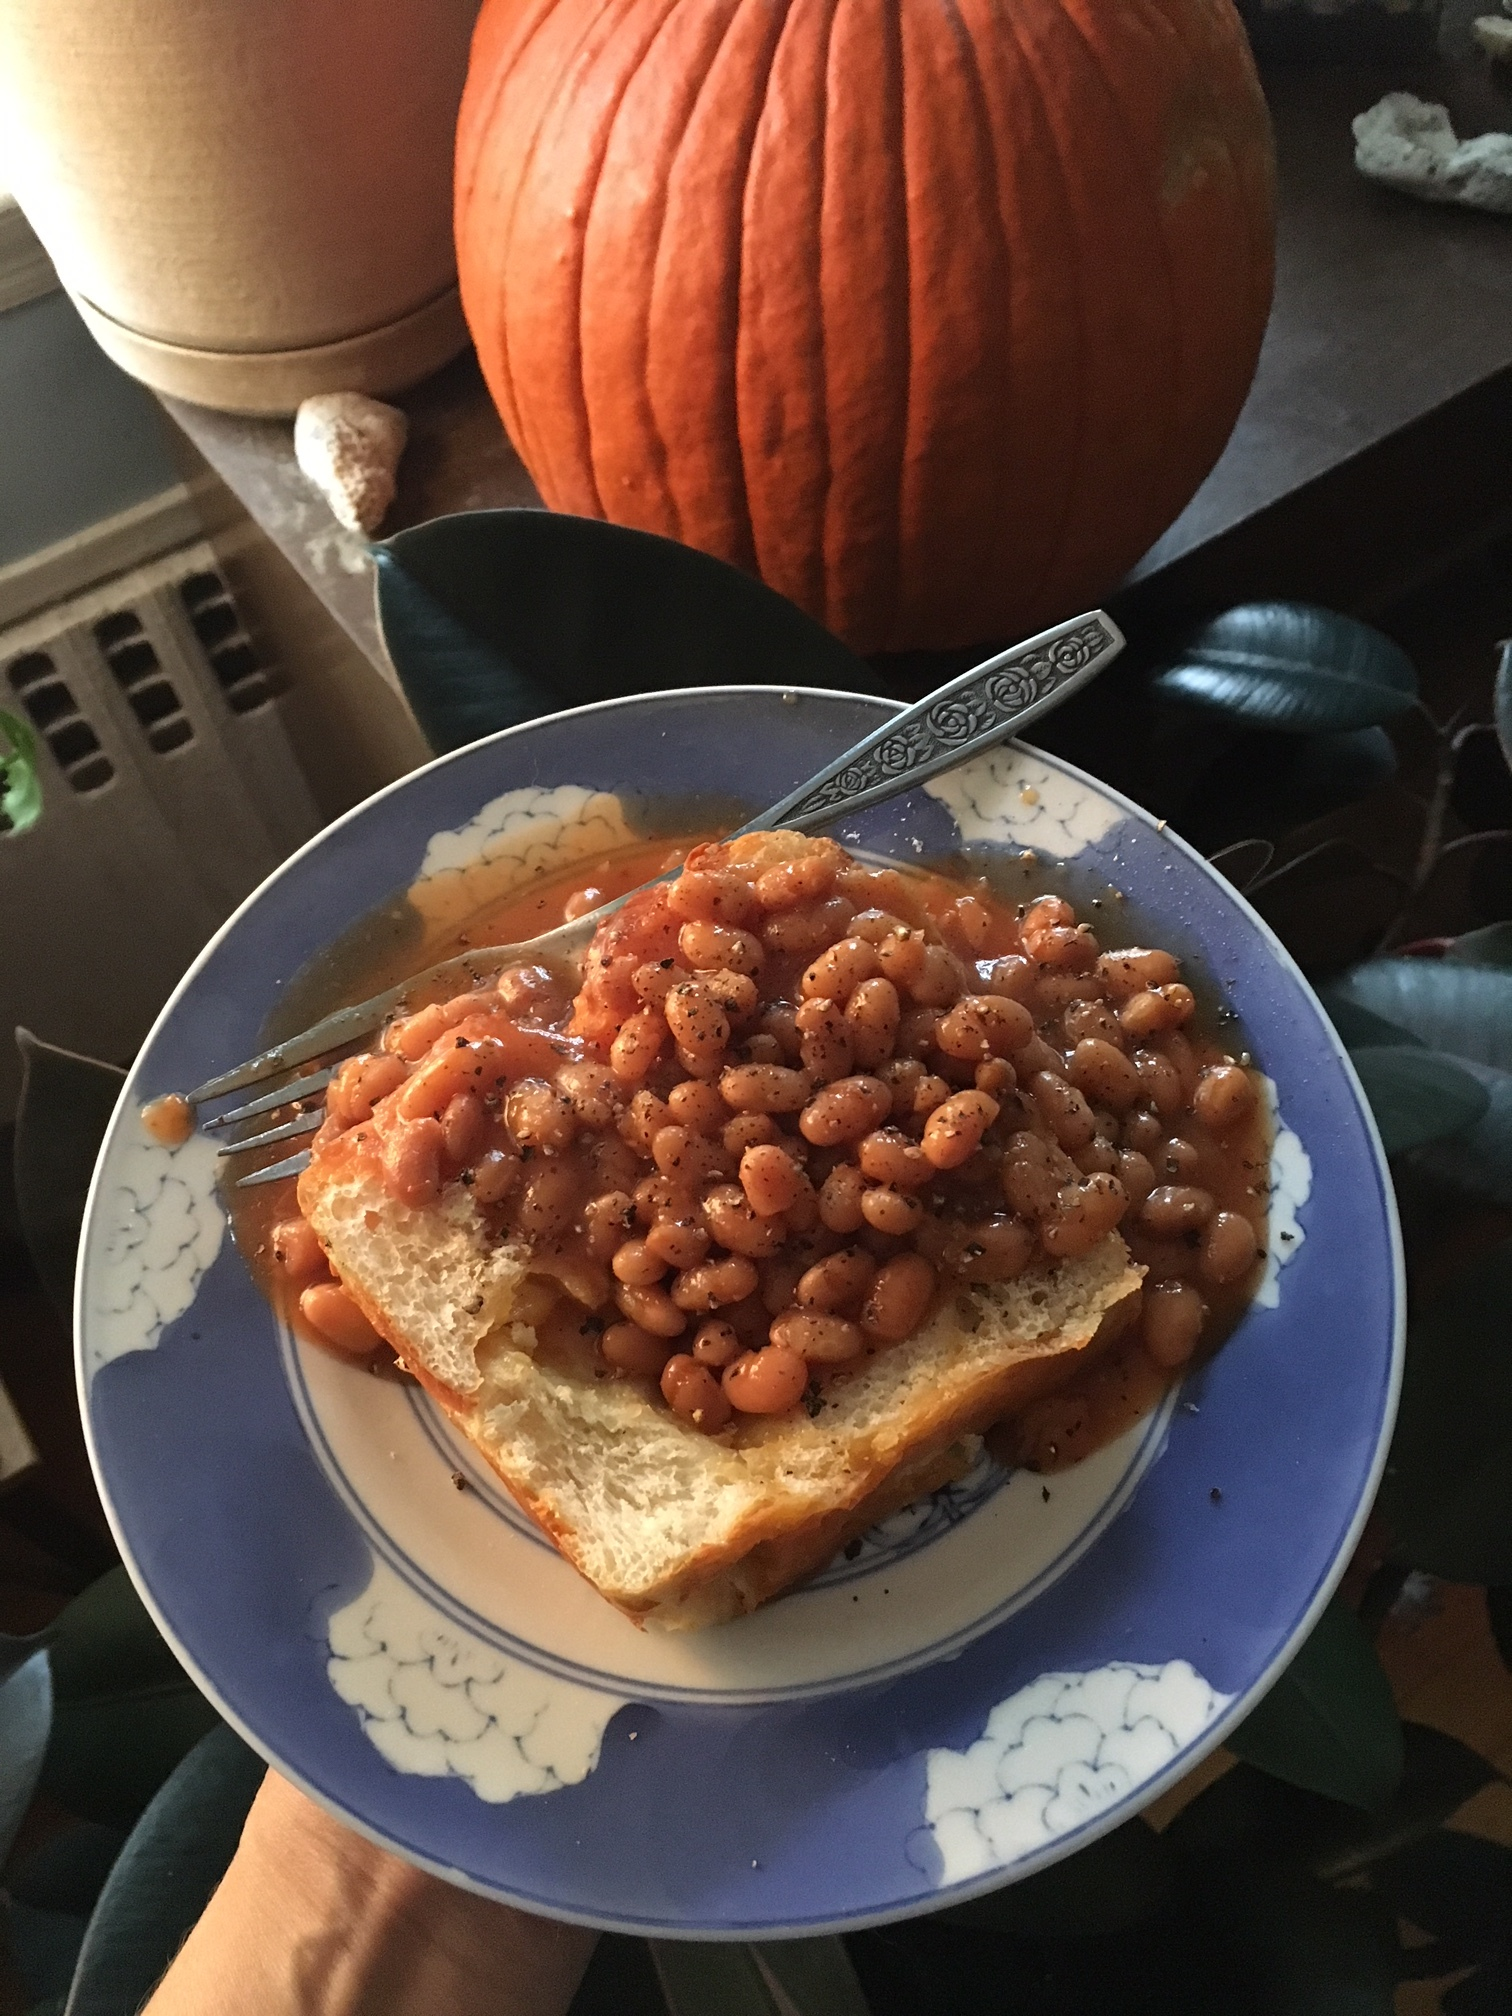 This is an example of a more processed meal I might eat. The cheese bread is made fresh daily at our local grocery store and the beans are vegetarian. Beans on toast is a favorite breakfast of mine but I only eat it once in a while.